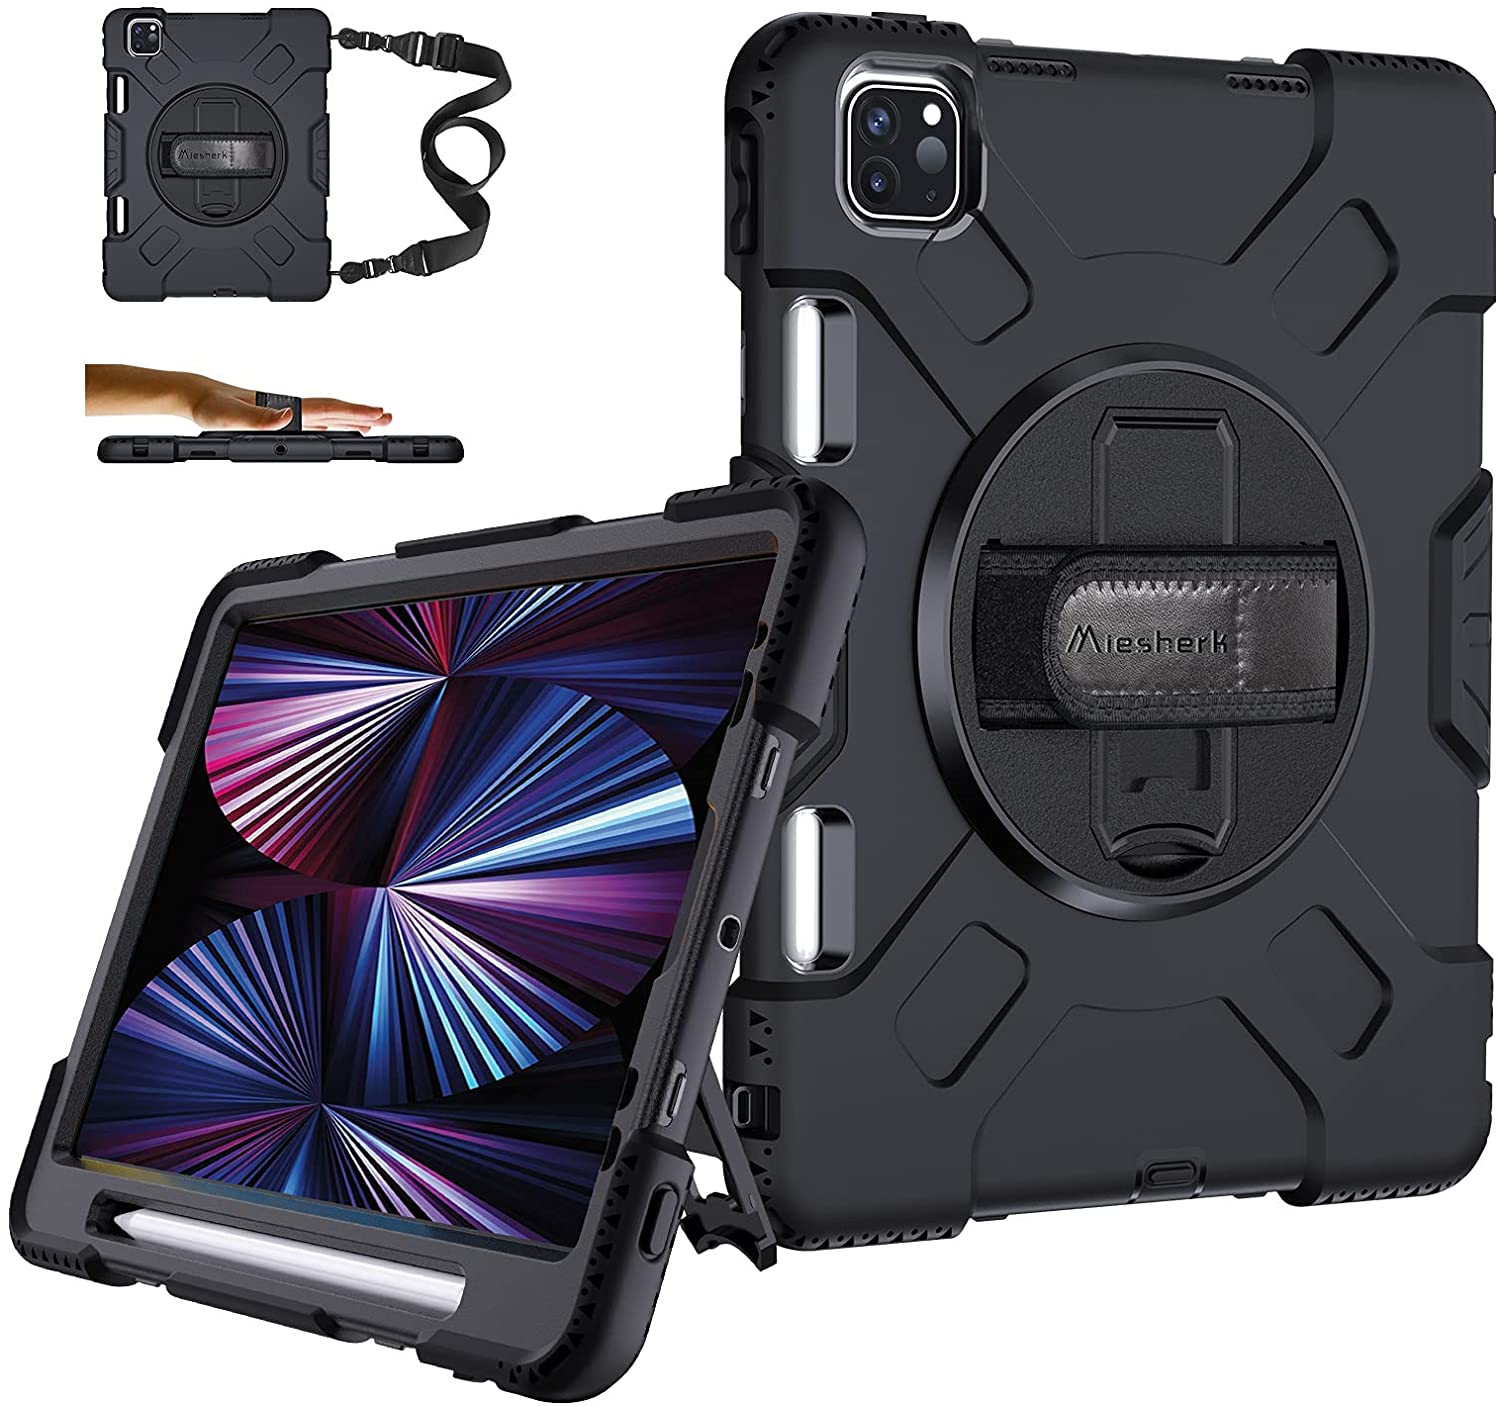 iPad Pro 11 Case 2021 3rd Generation w/ Pencil Holder - Military Grade [15ft Drop Tested] Shockproof Protective Silicone Cover for iPad 11 Inch 2nd Gen 2020/ 2018 - Stand+ Handle+ Shoulder Strap Black